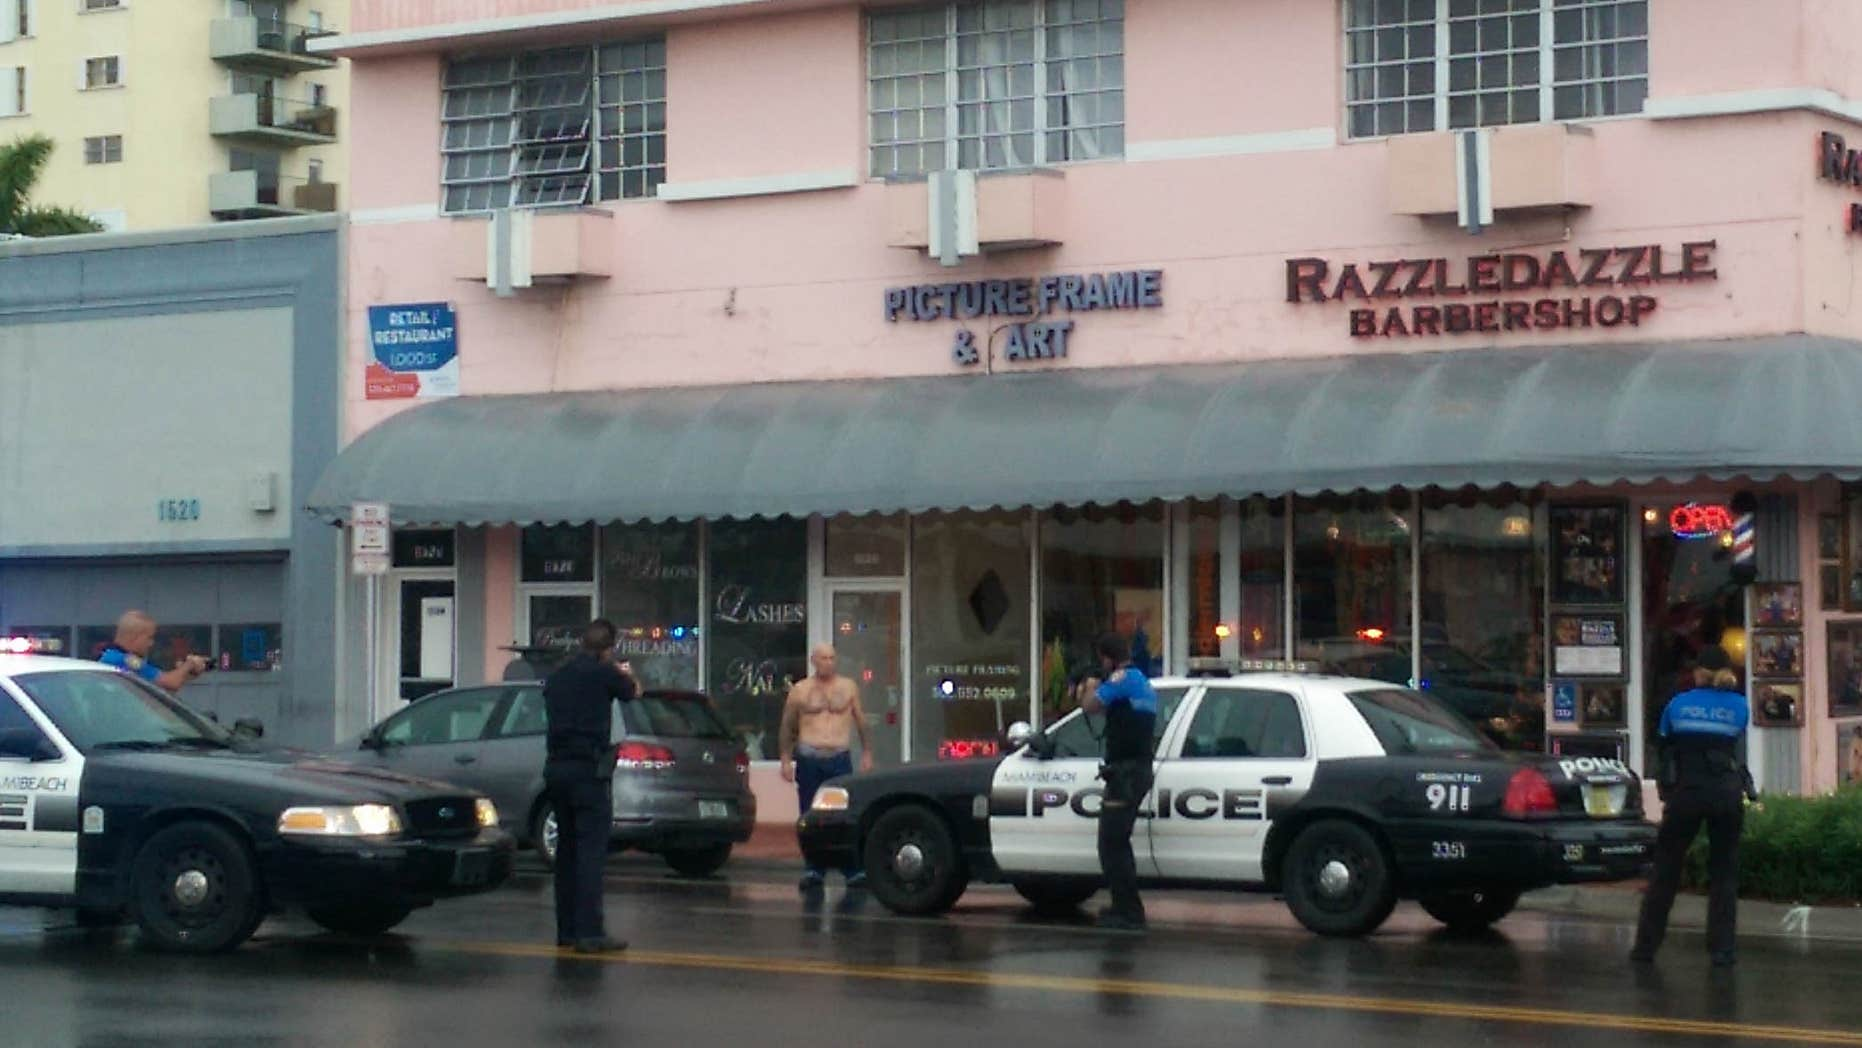 Dec. 5, 2015: In this photo provided by Marcellus Johnson, authorities draw their guns on a man suspected in a bank robbery in Miami Beach, Fla.